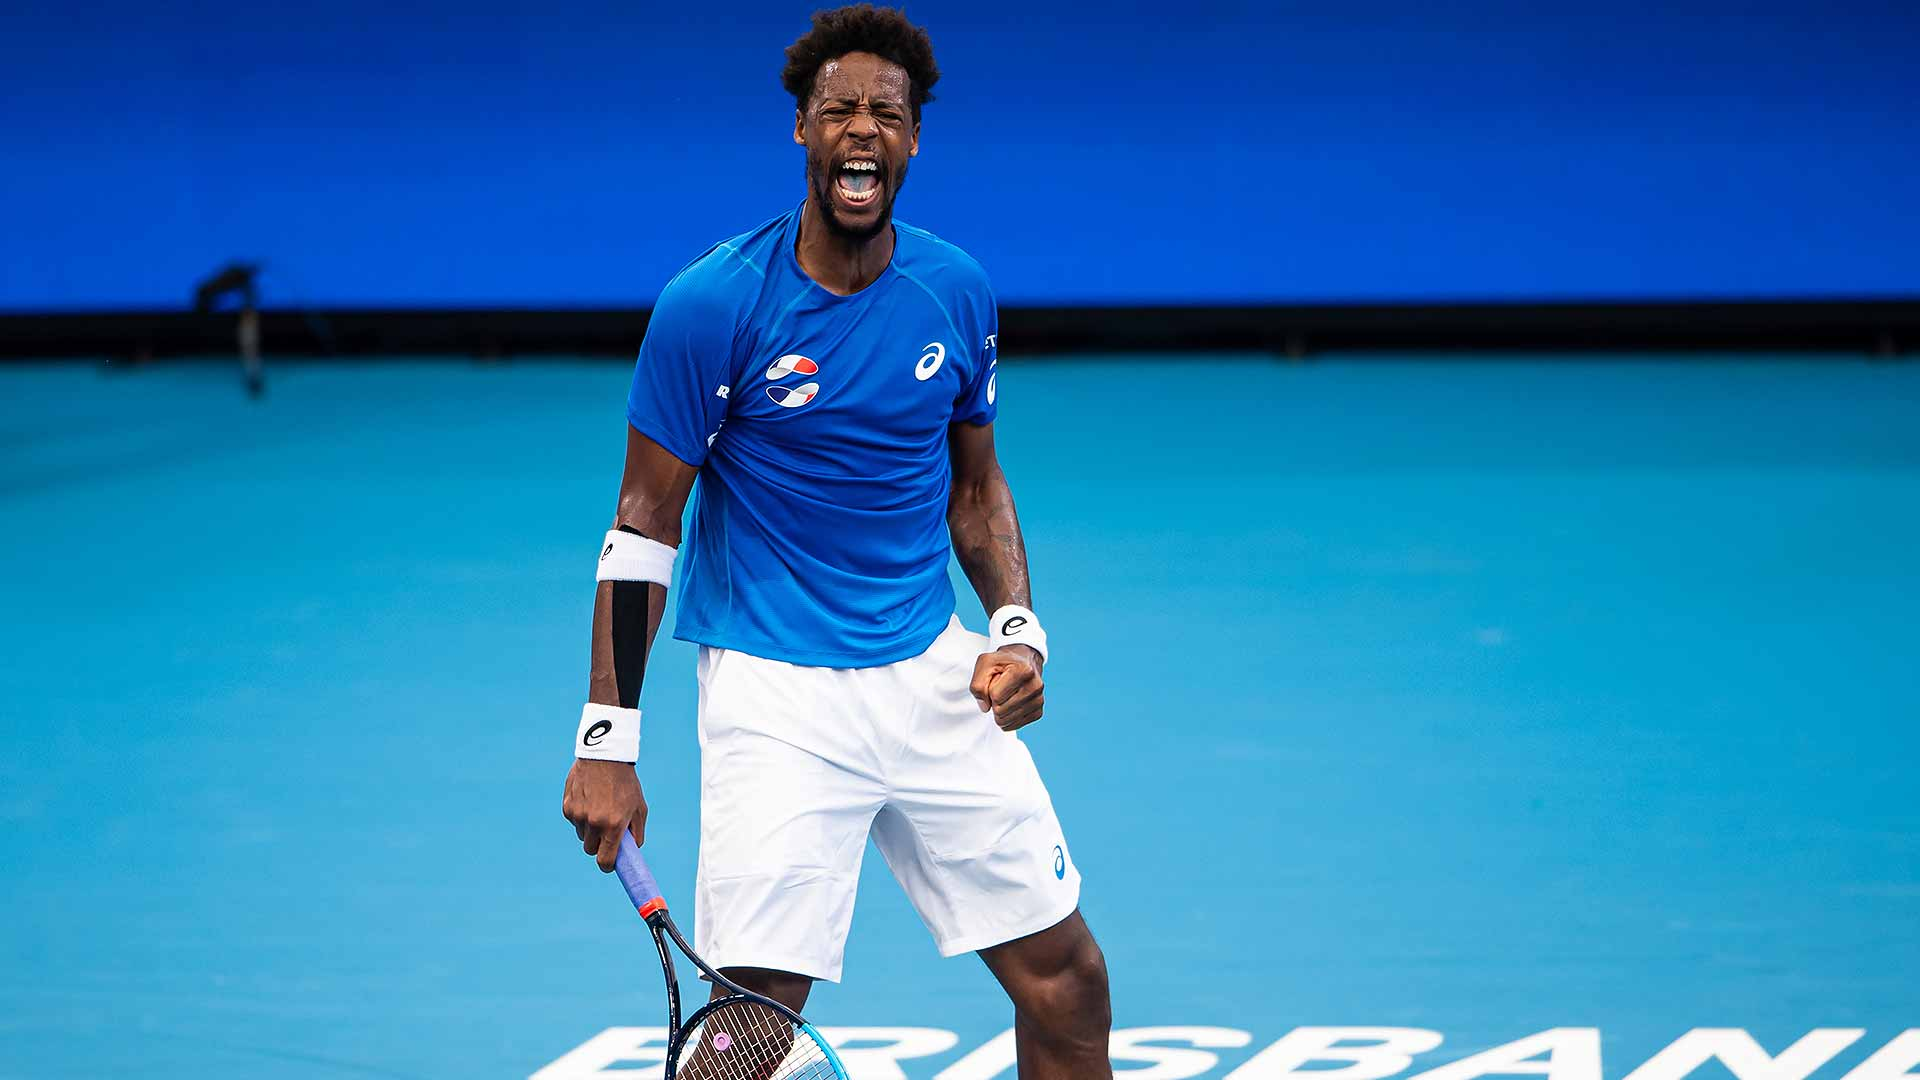 Gael Monfils wins his opening match at the ATP Cup on Saturday in Brisbane.